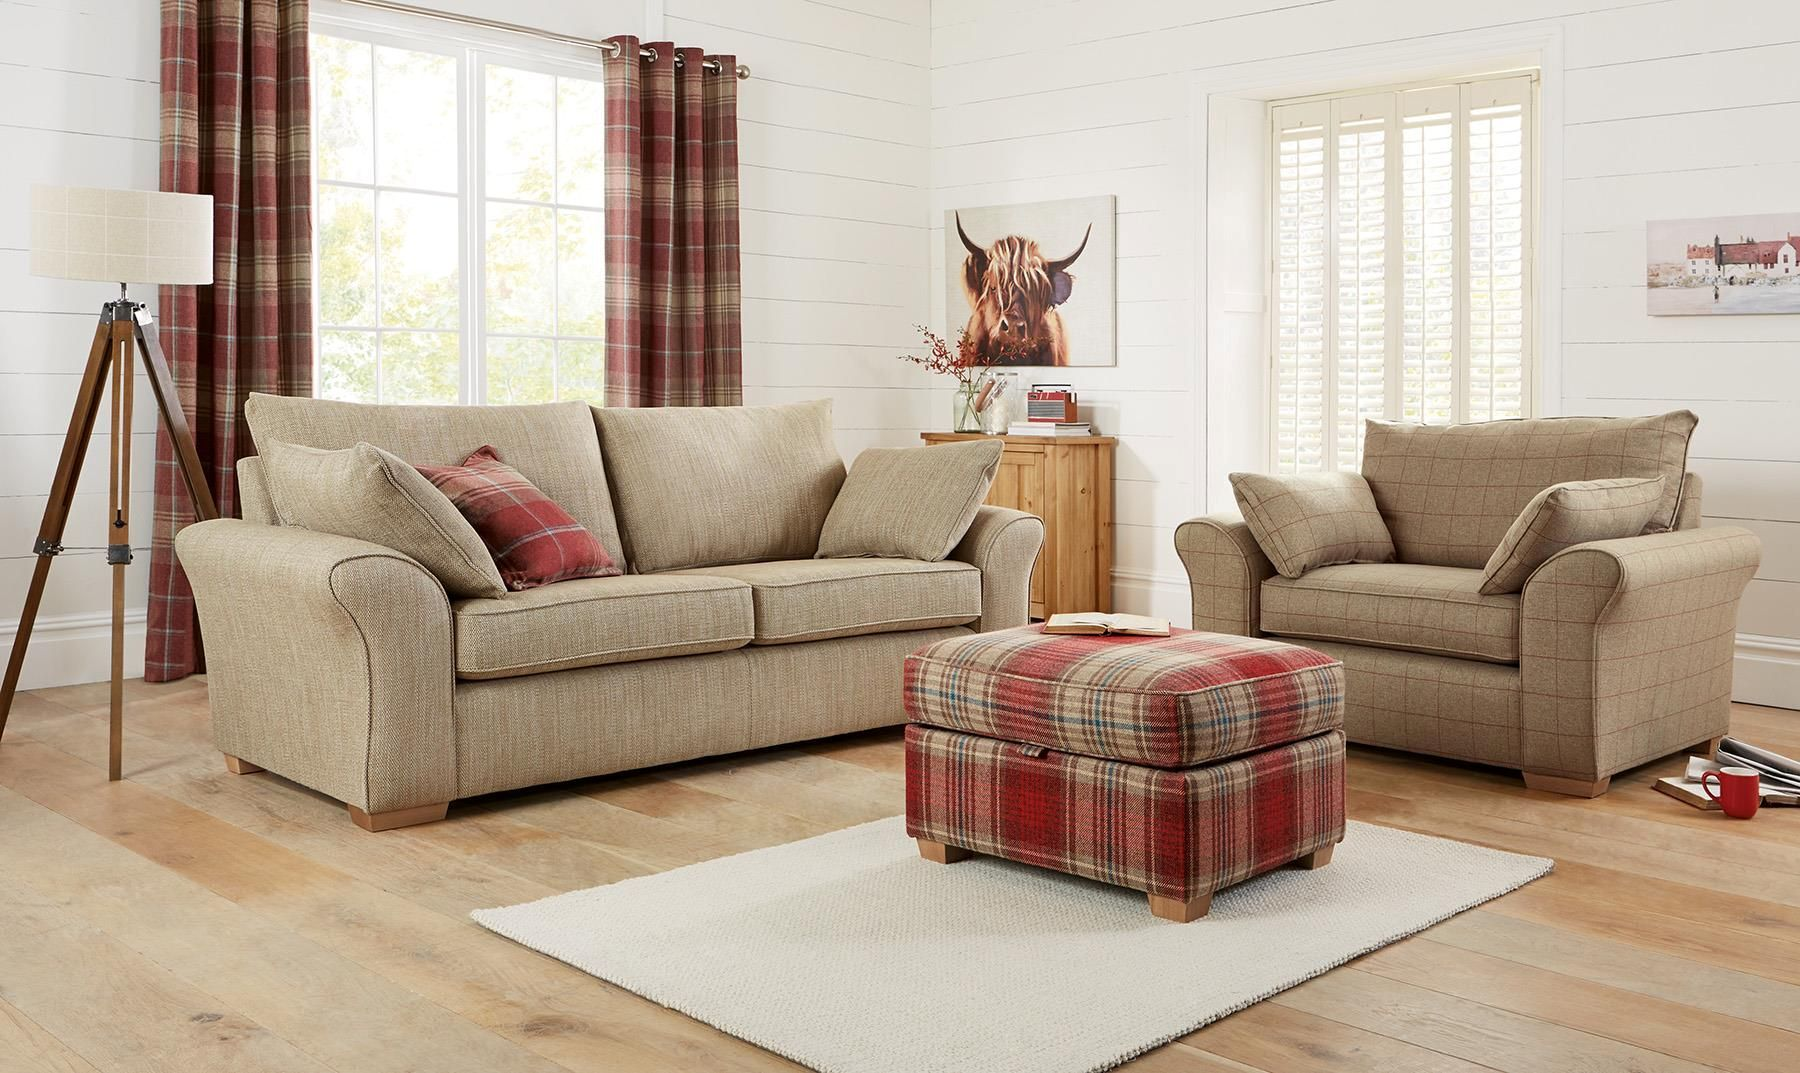 Interior Design Living Room Uk Next Tartan Living Room For My Home Pinterest Shops